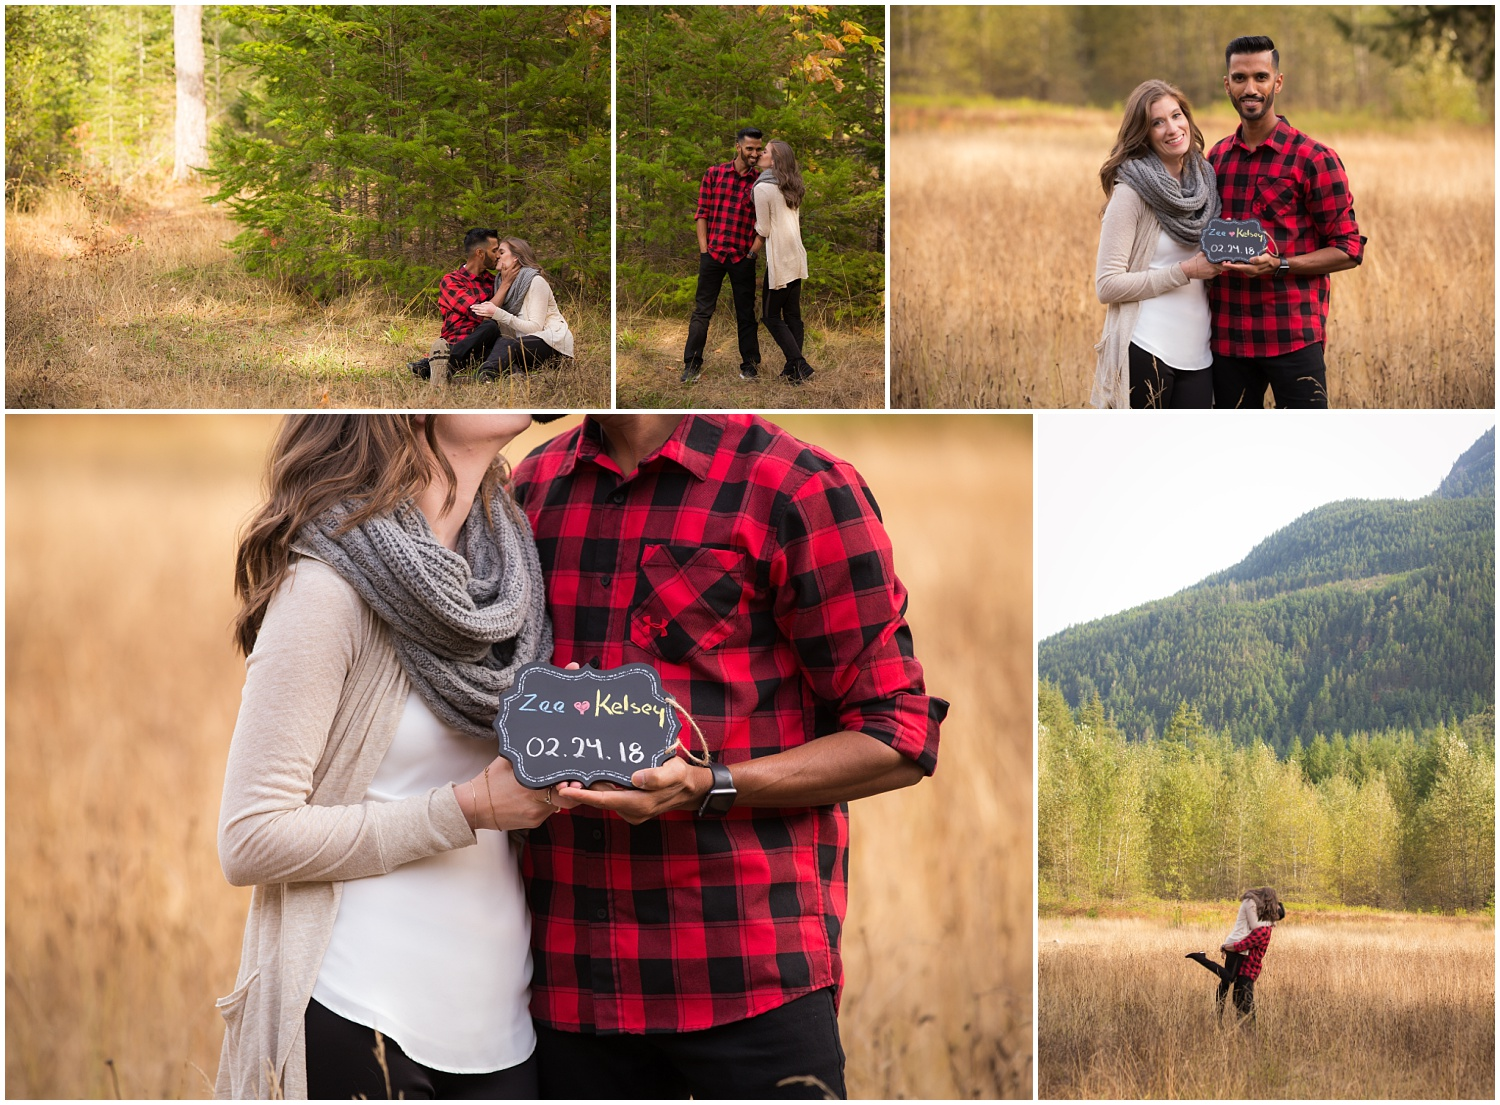 Amazind Day Photography - Chilliwack River Engagement Session - Chilliwack Engagement Photographer - Langley Engagement Photographer (5).jpg